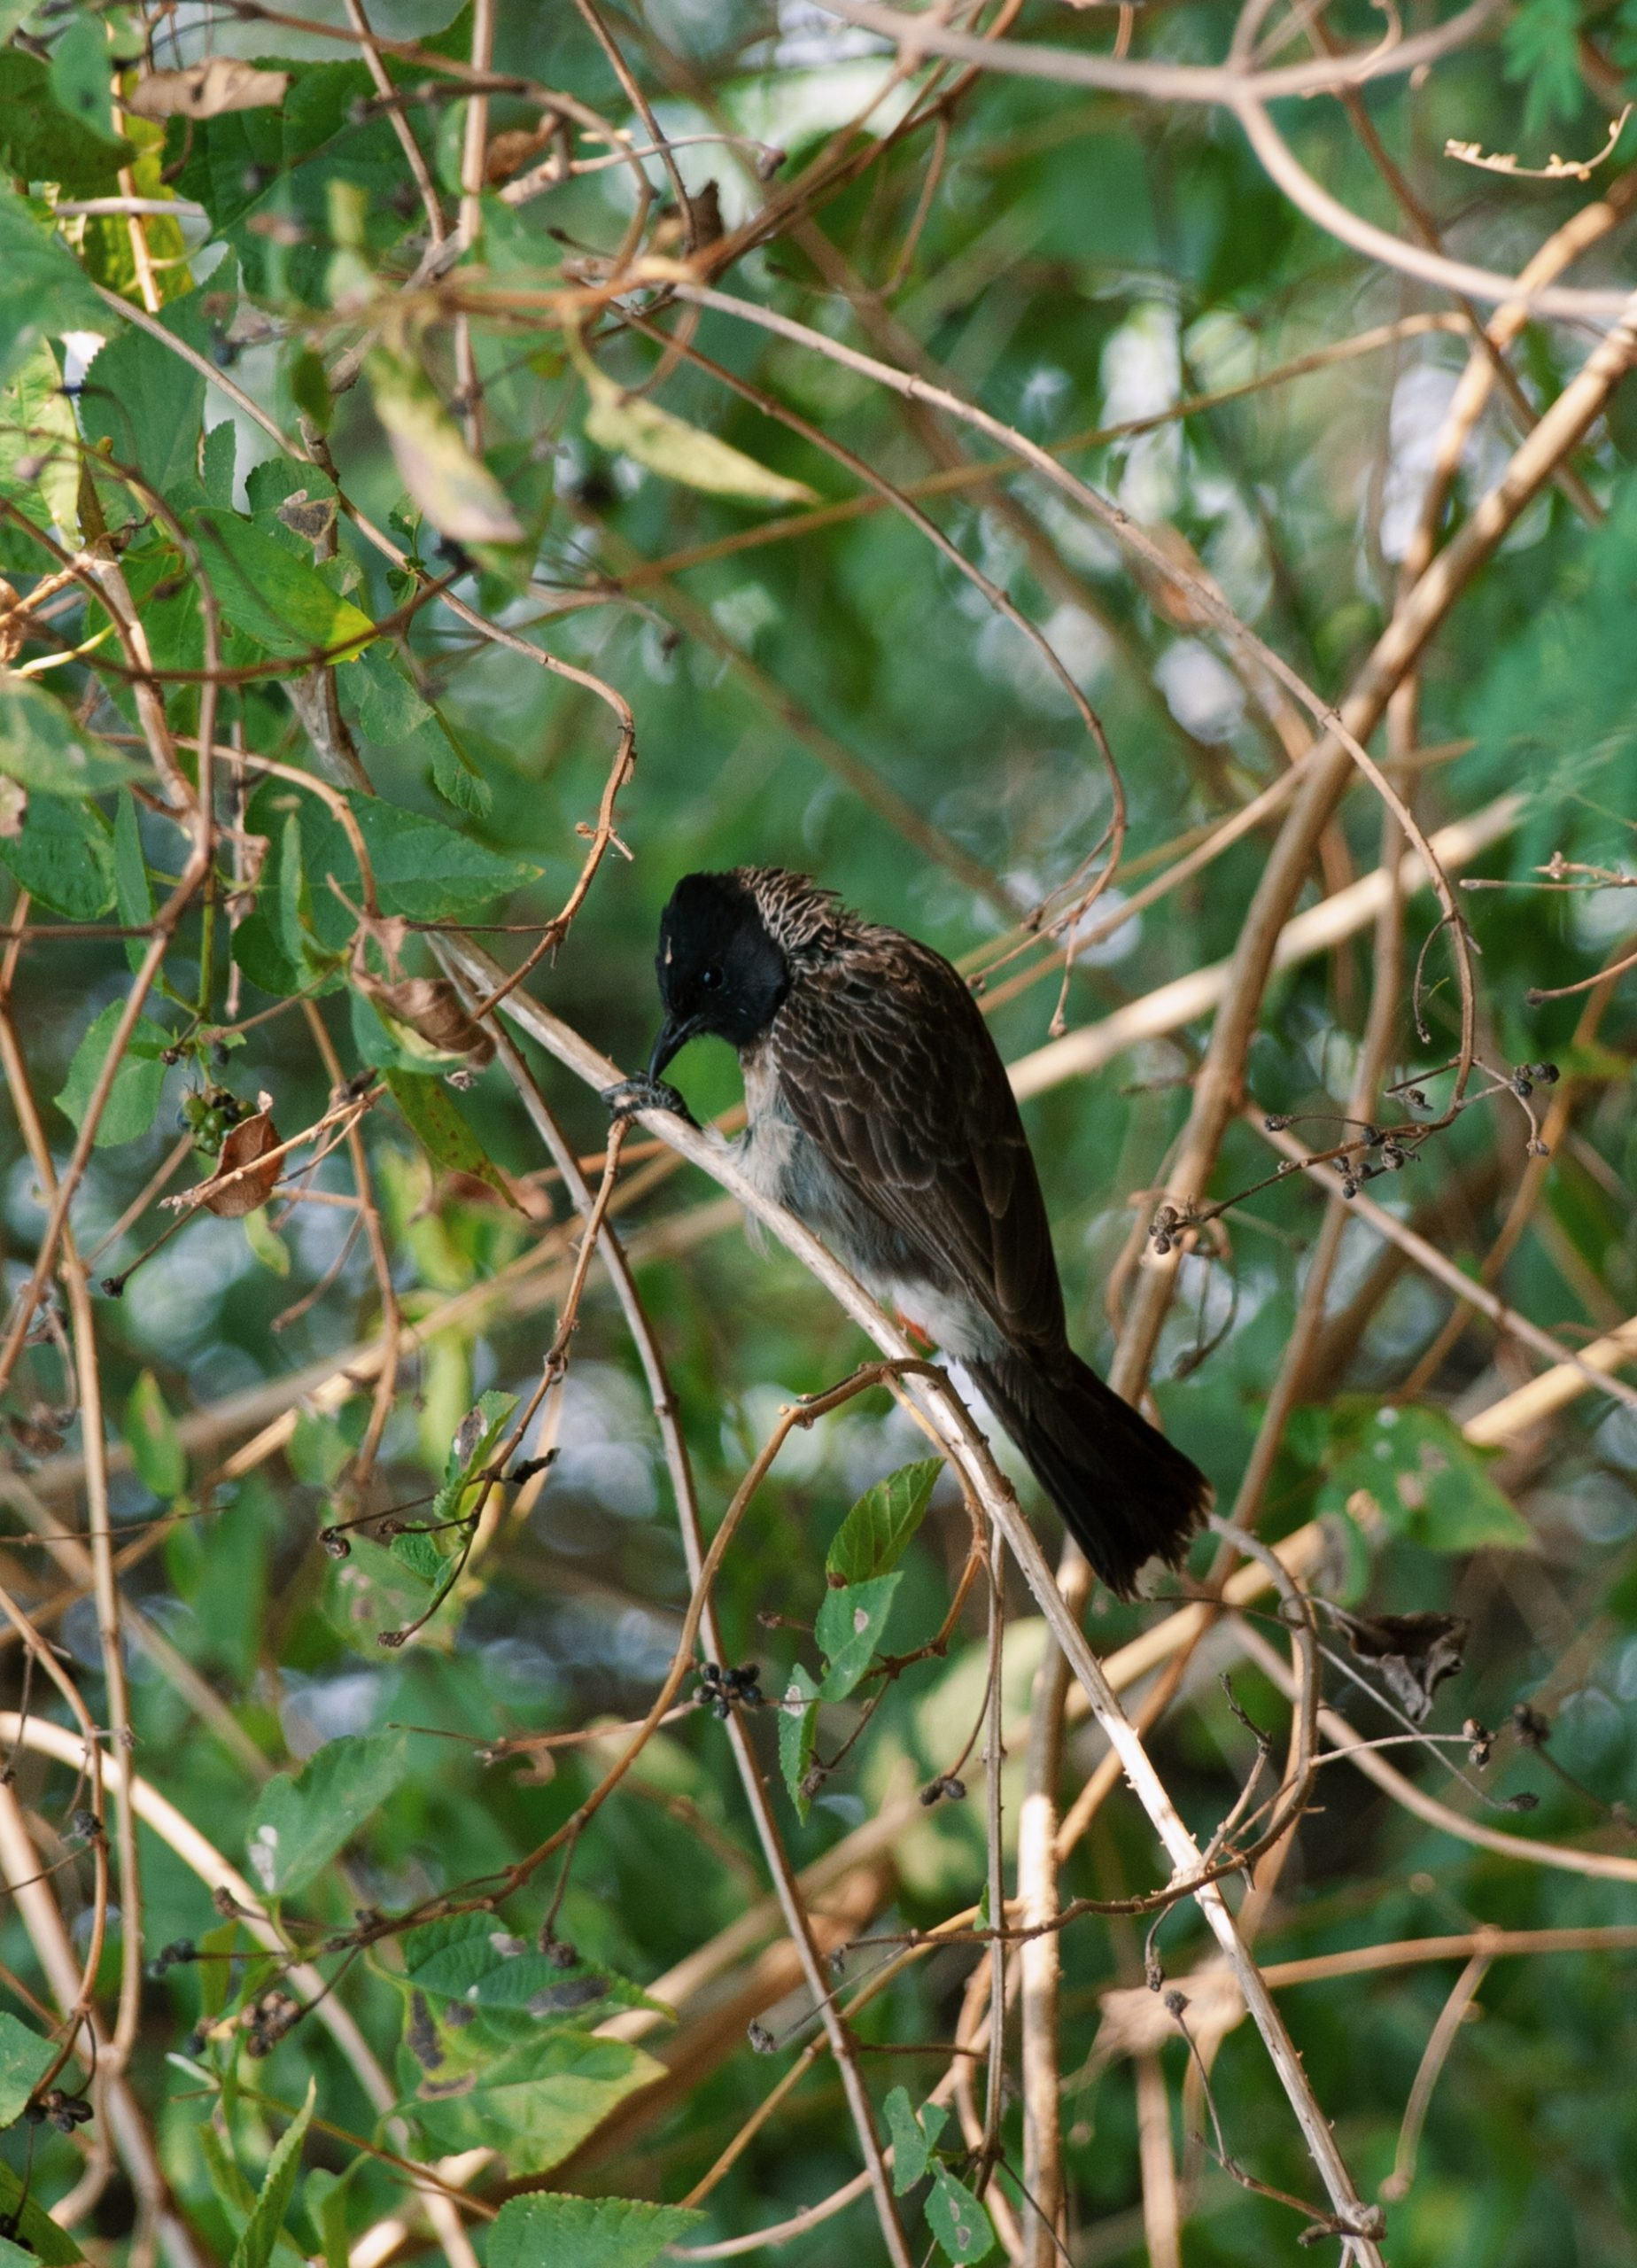 Red velvet bulbul sitting on branches